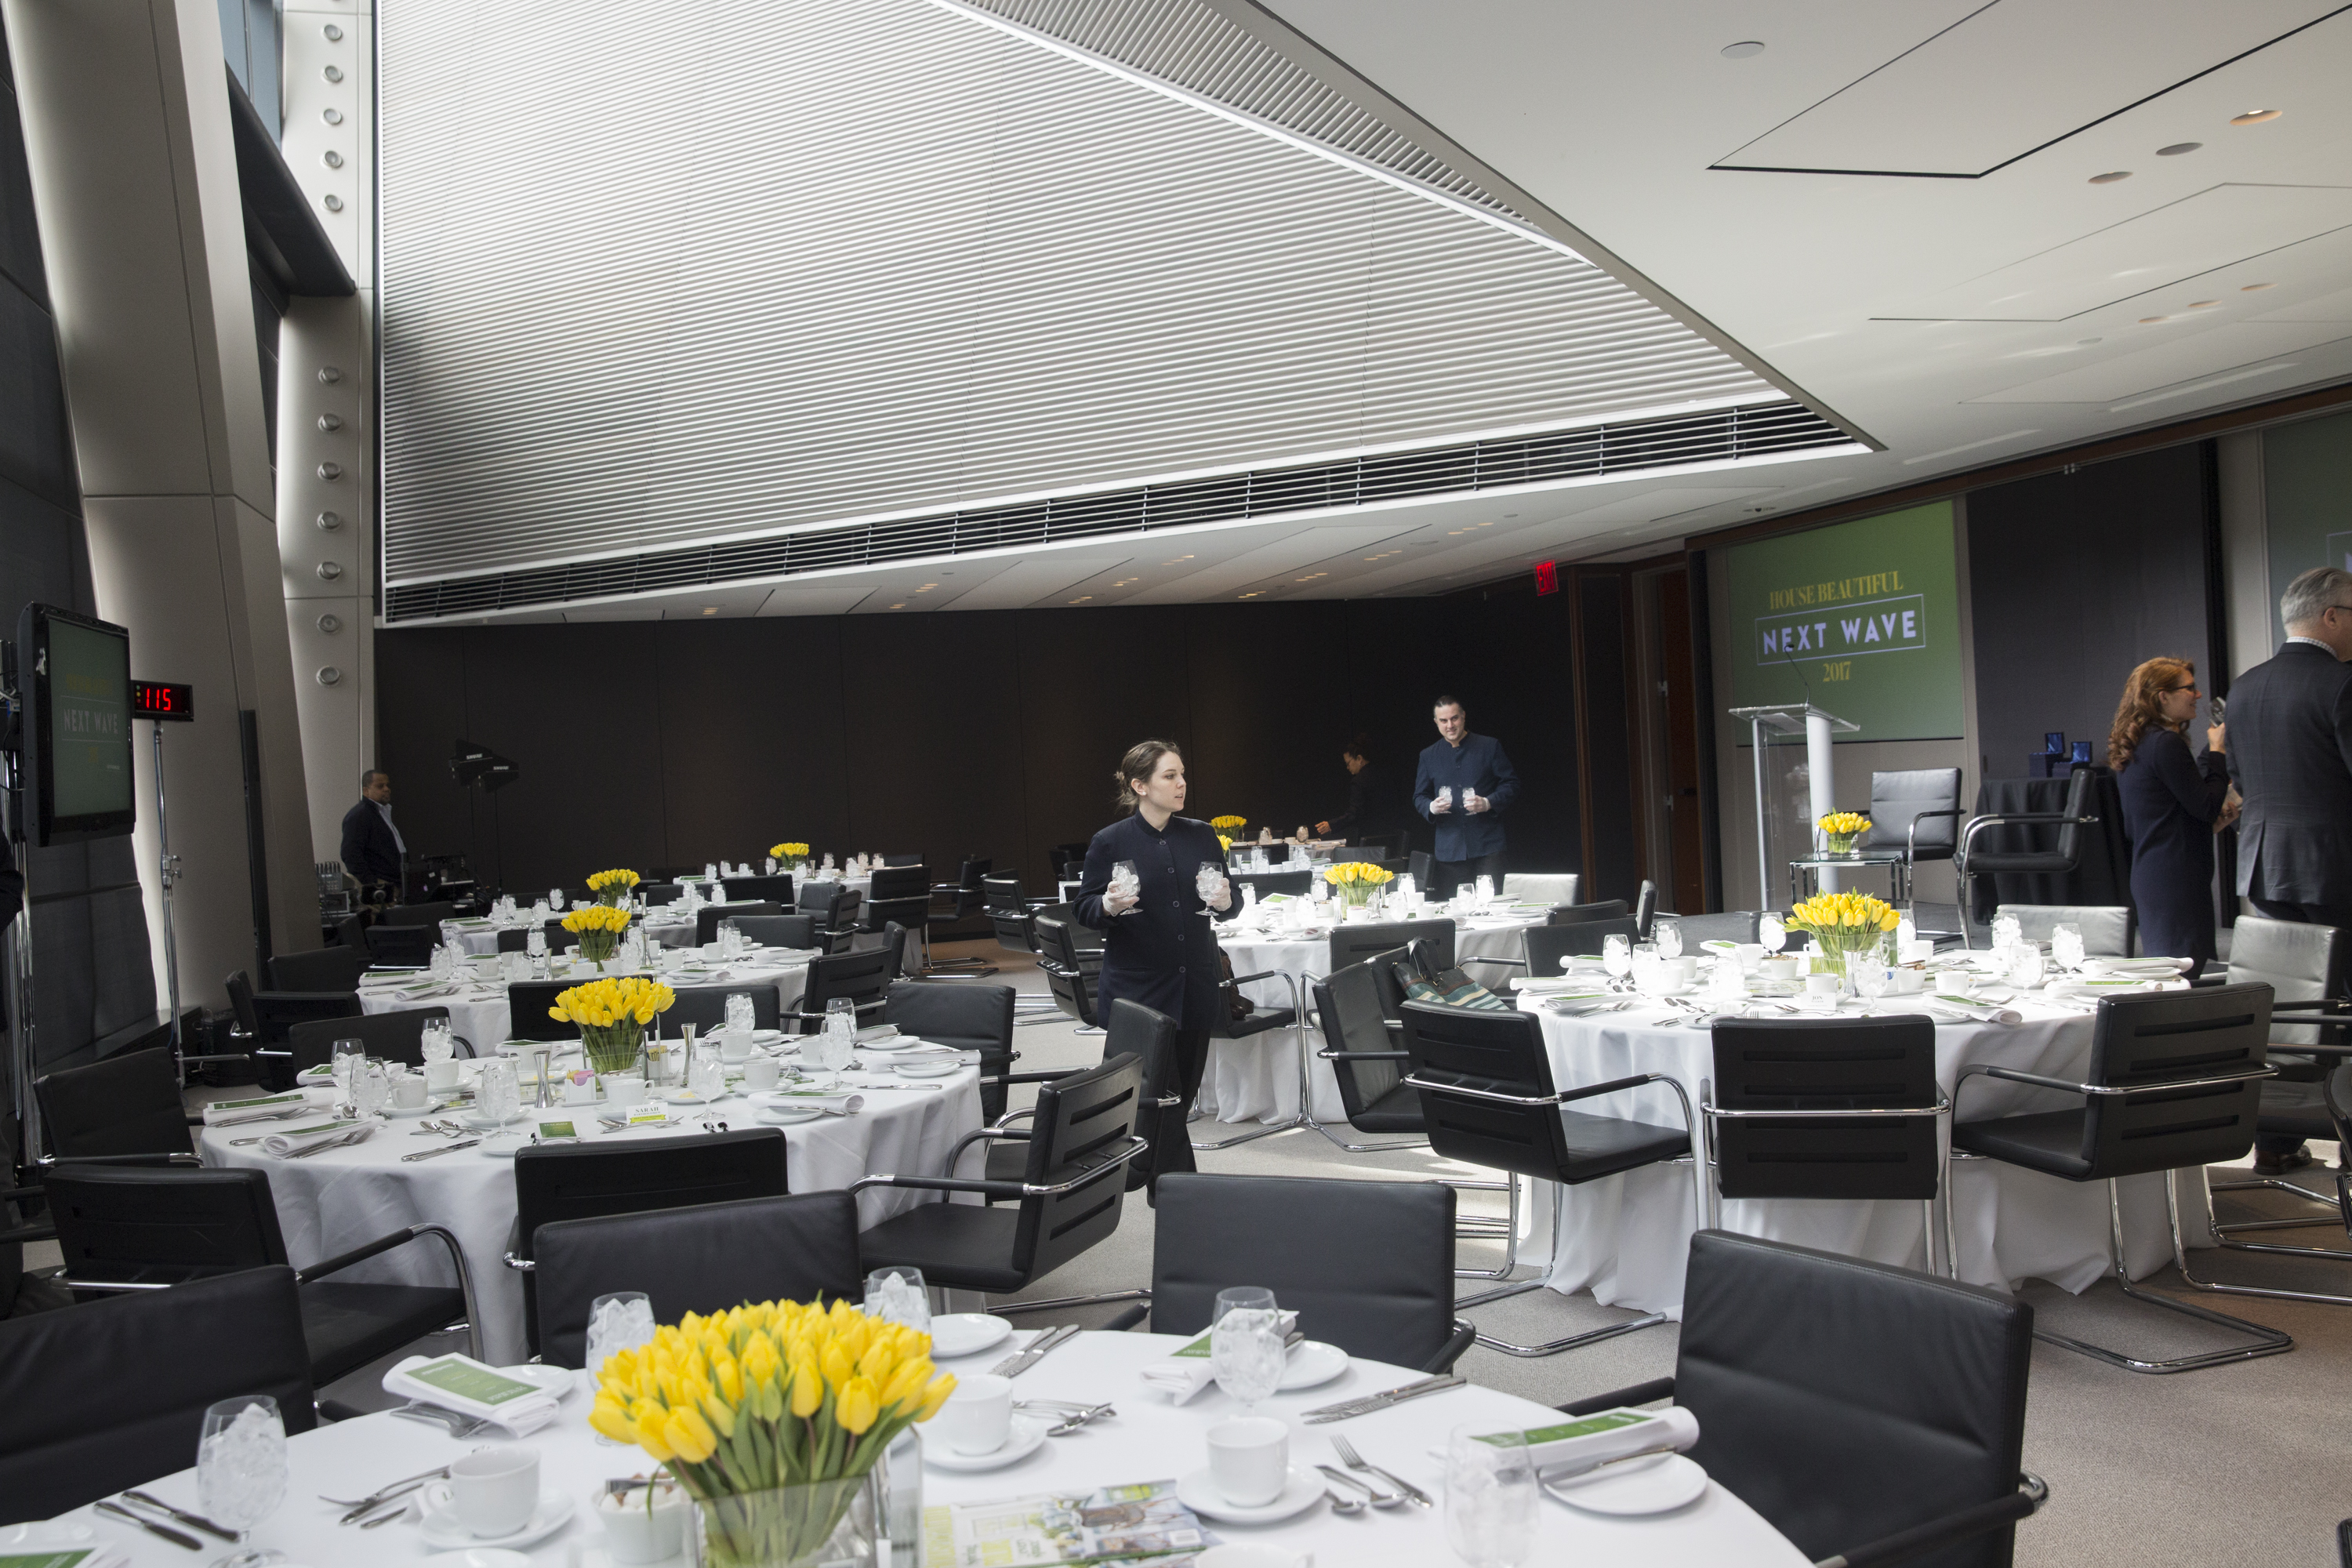 The 44th floor of Hearst Tower set up for the luncheon